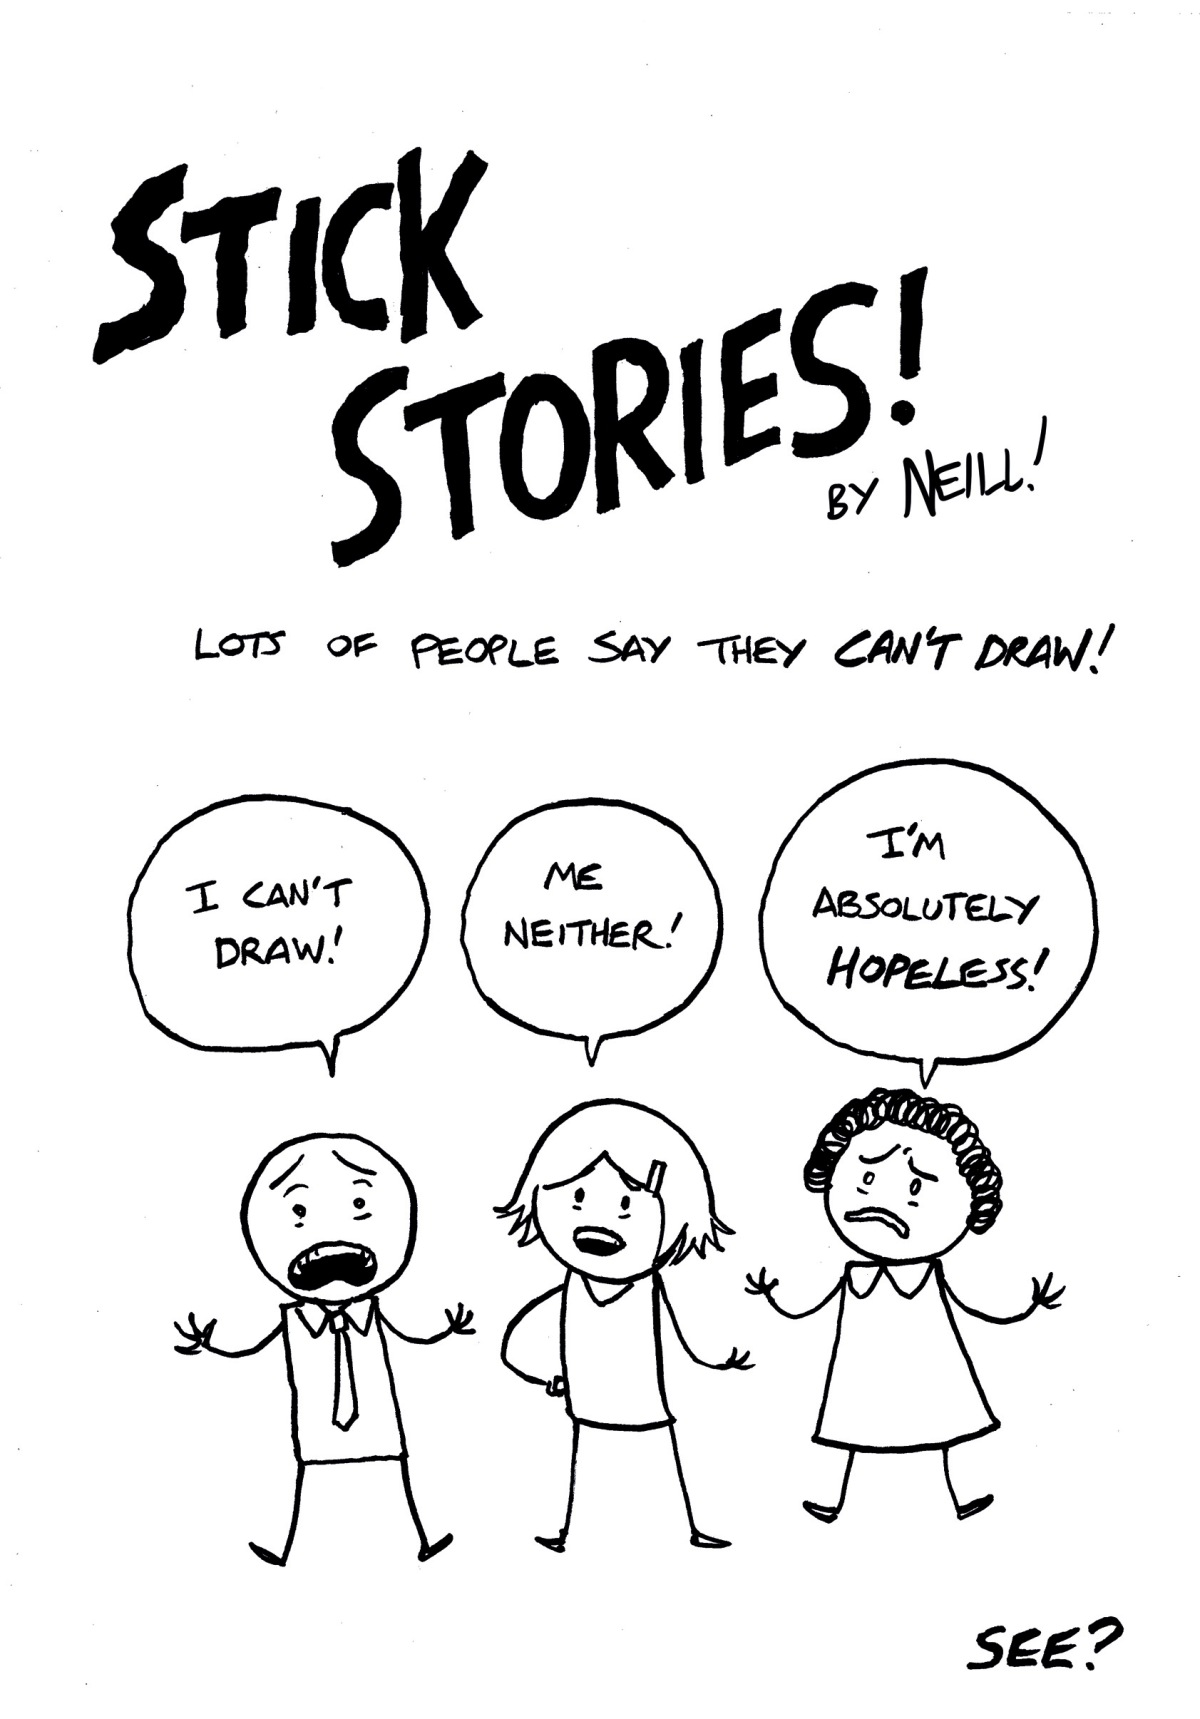 January Comics Challenge: Stick Stories!